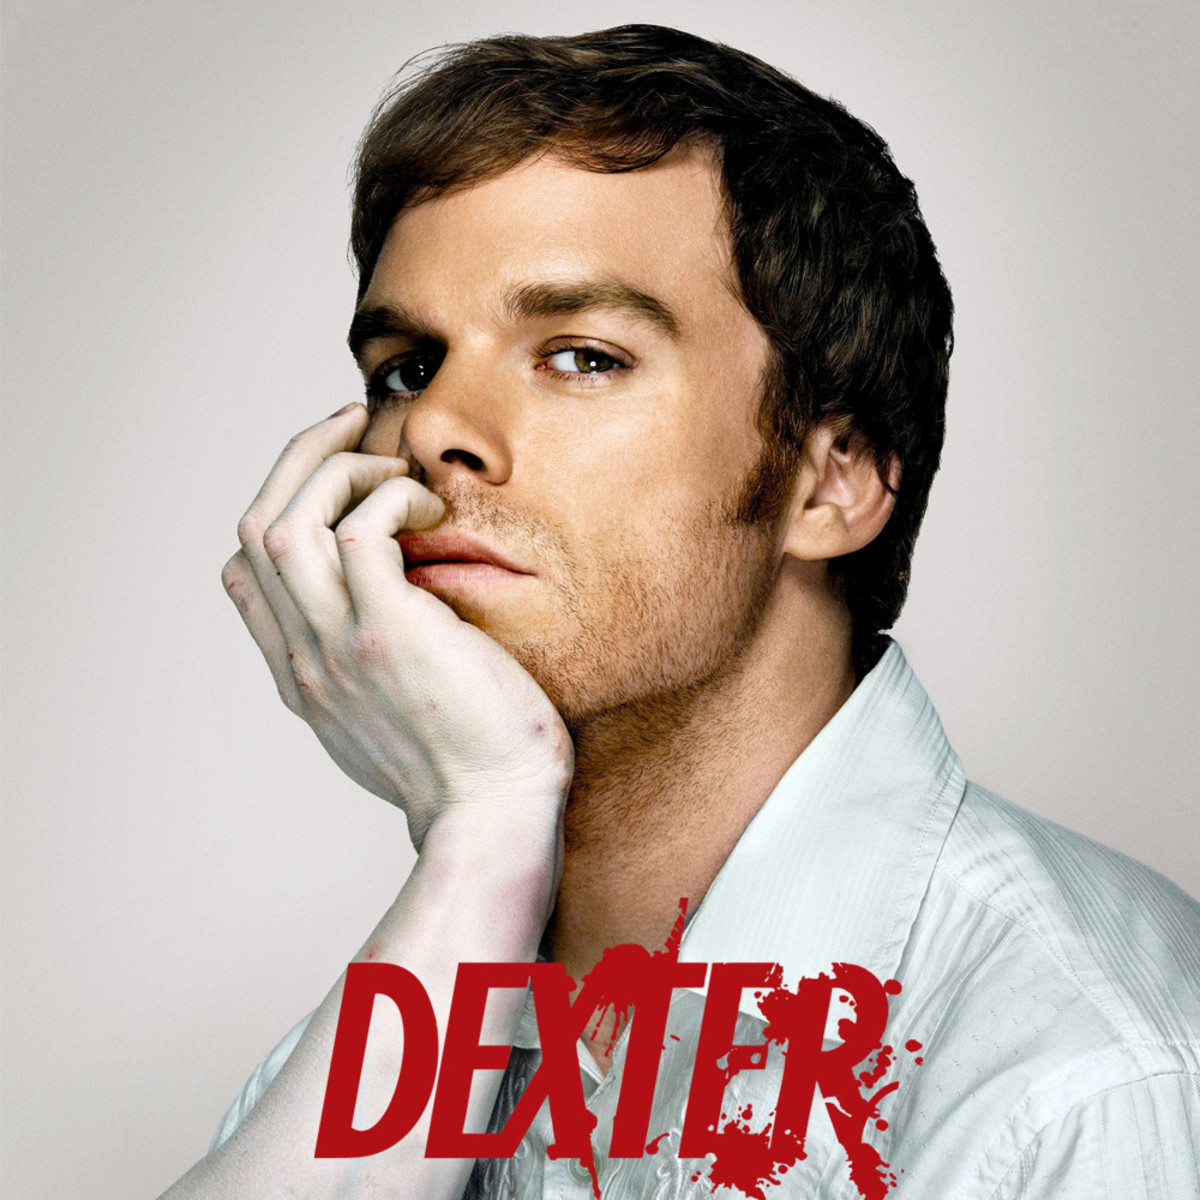 Dexter's first season is derived from the novel Darkly Dreaming Dexter, the first of the Dexter series of novels by Jeff Lindsay.